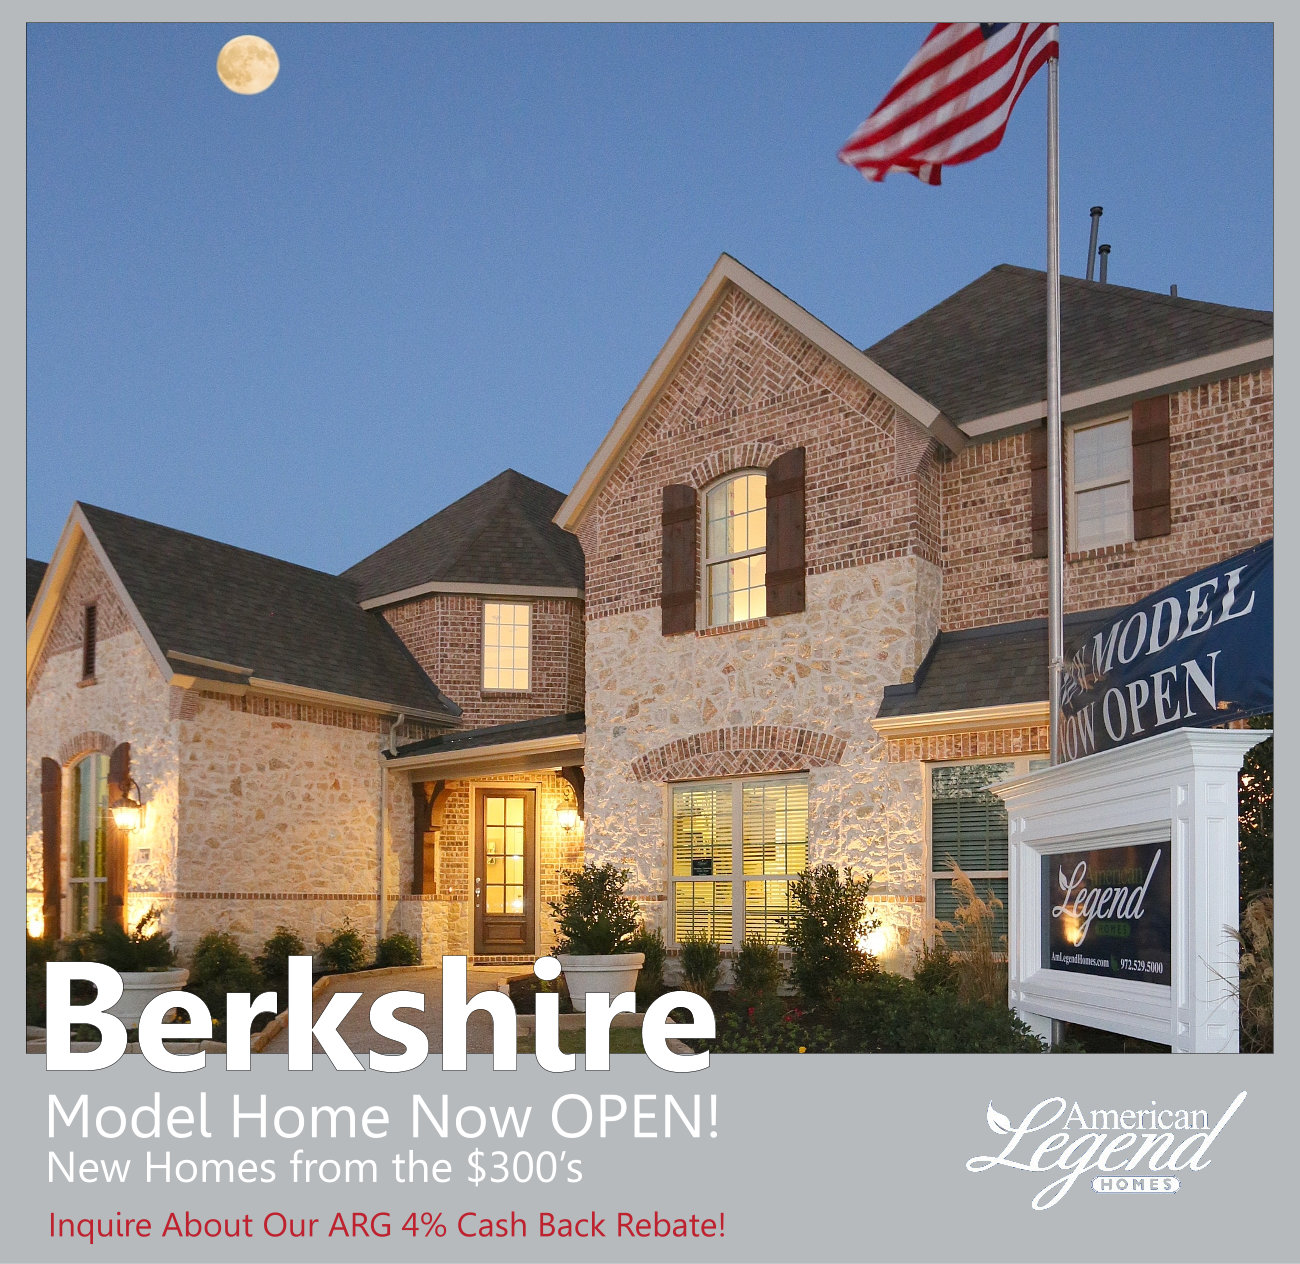 American Legend Homes Model Home in Berkshire Fort Worth is Now OPEN!